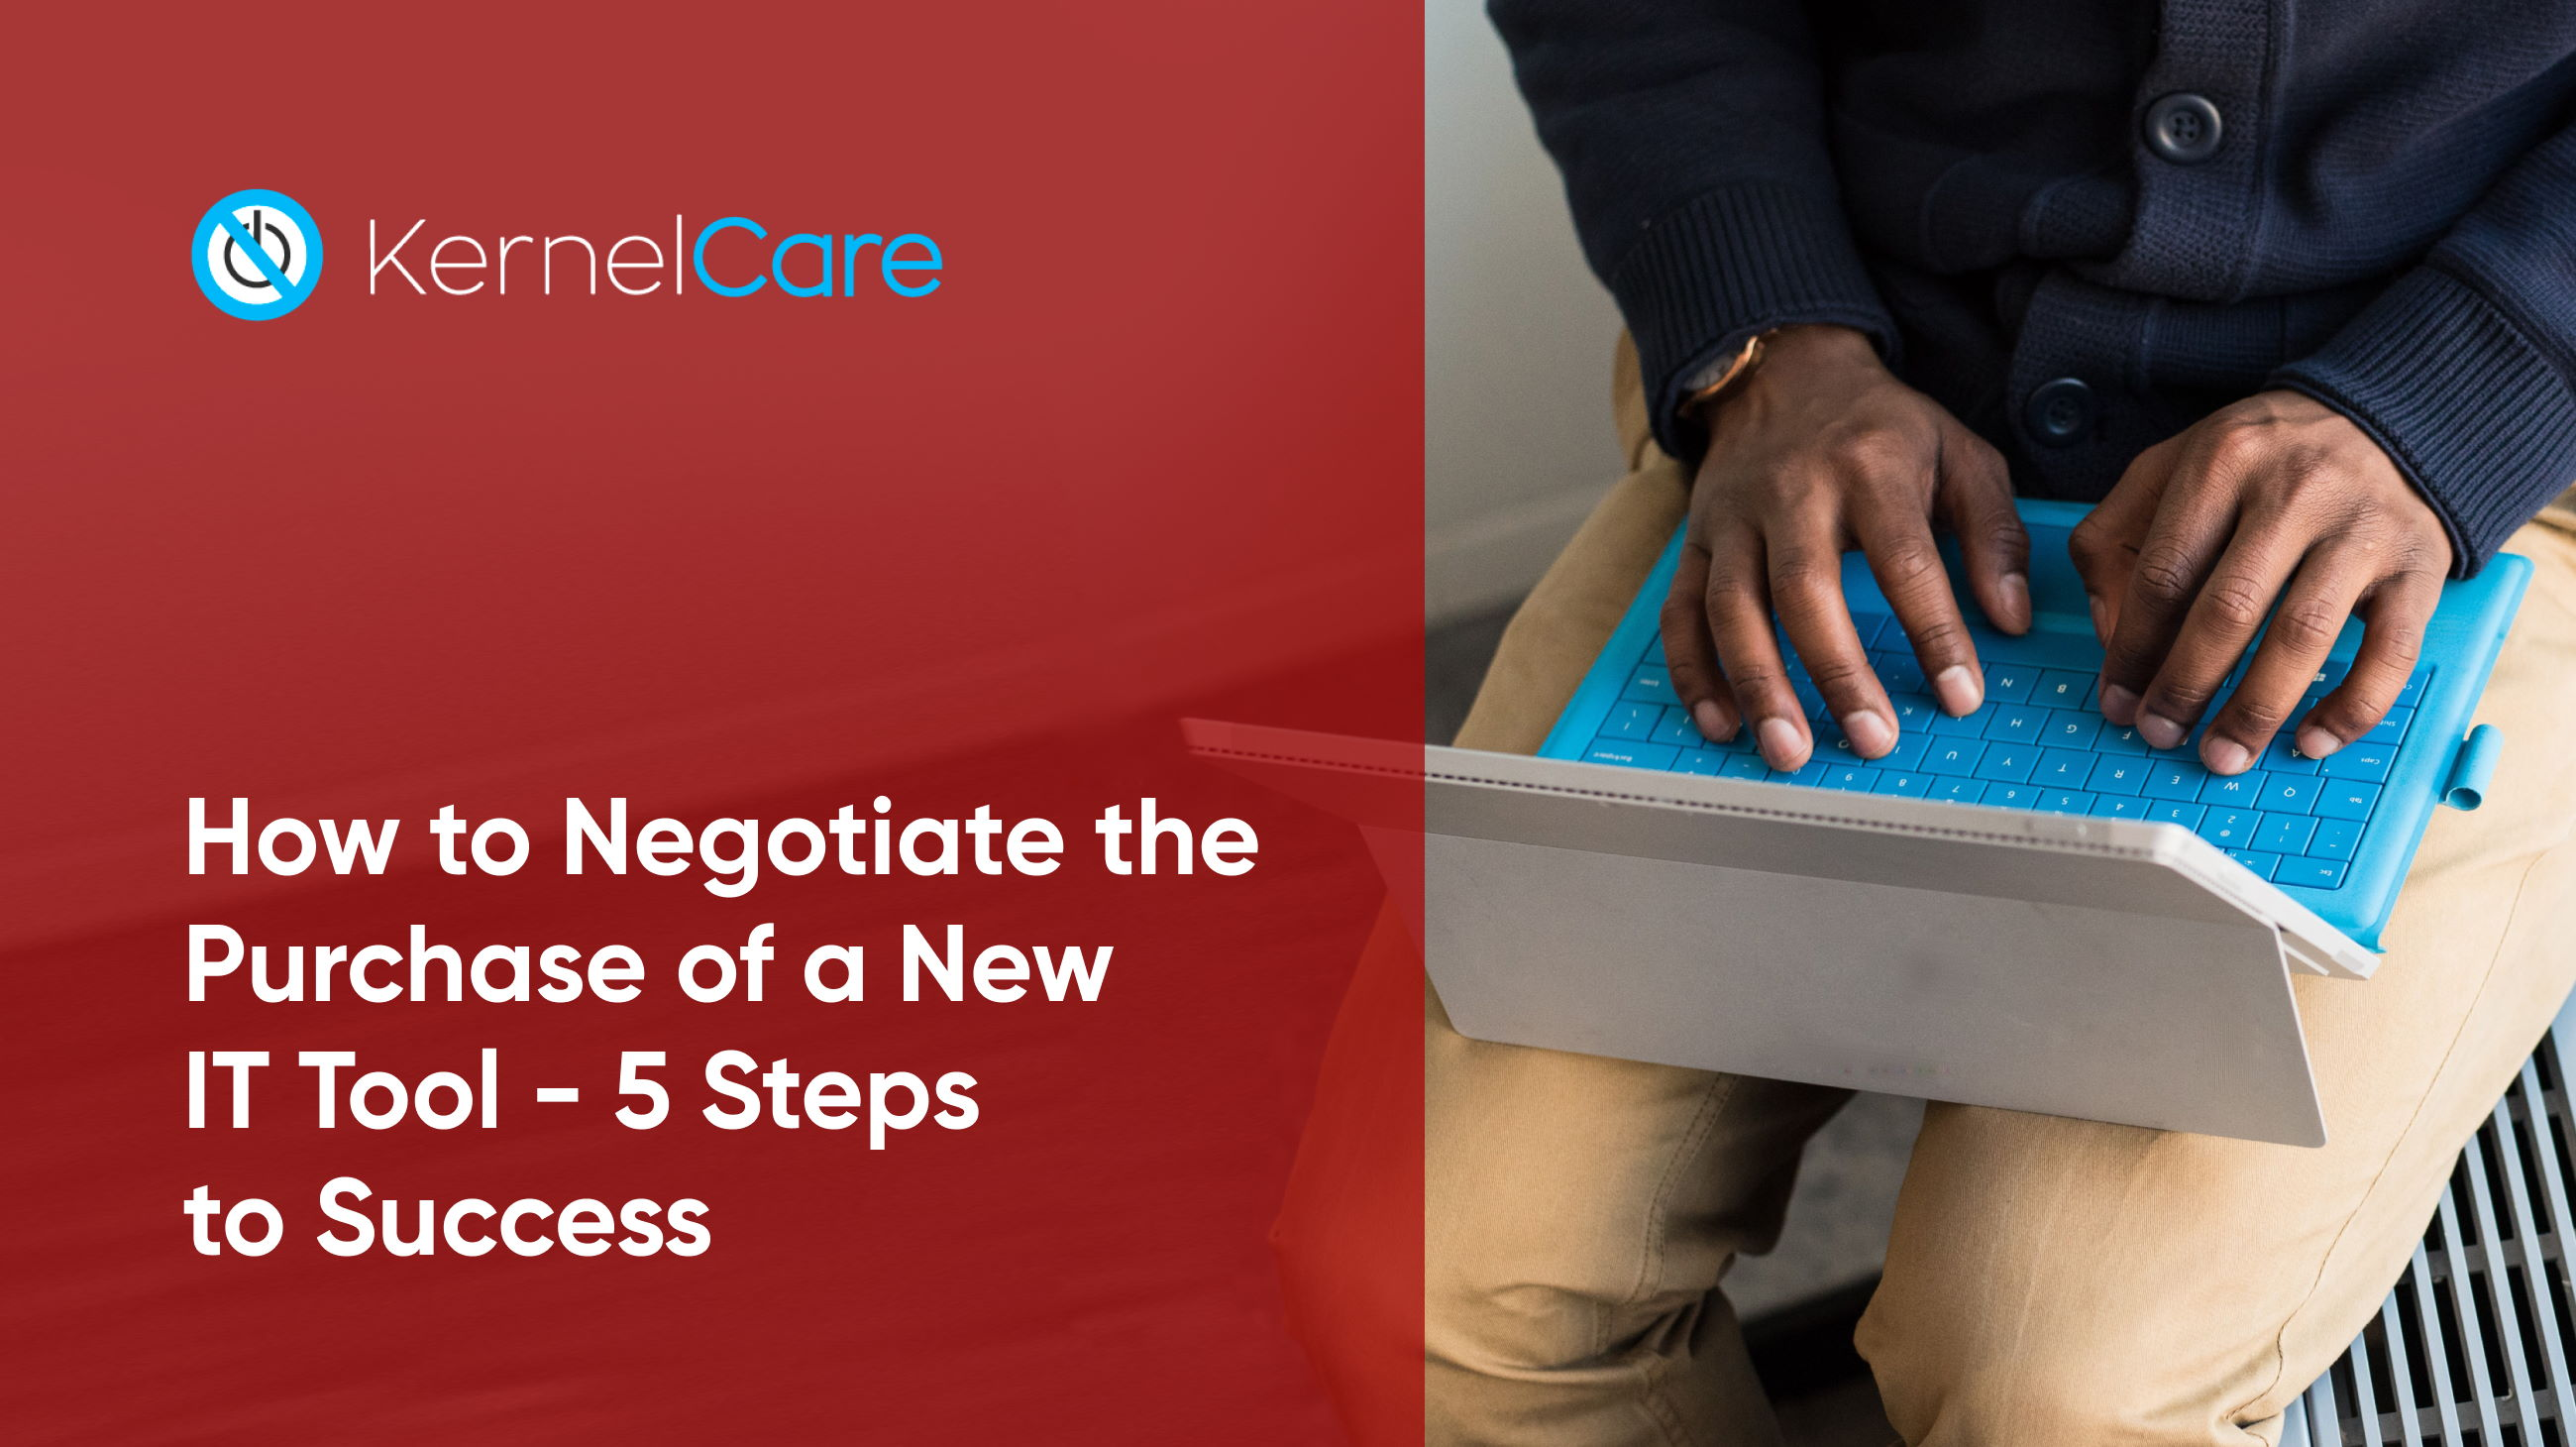 How to Negotiate the Purchase of a New IT Tool - 5 Steps to Success